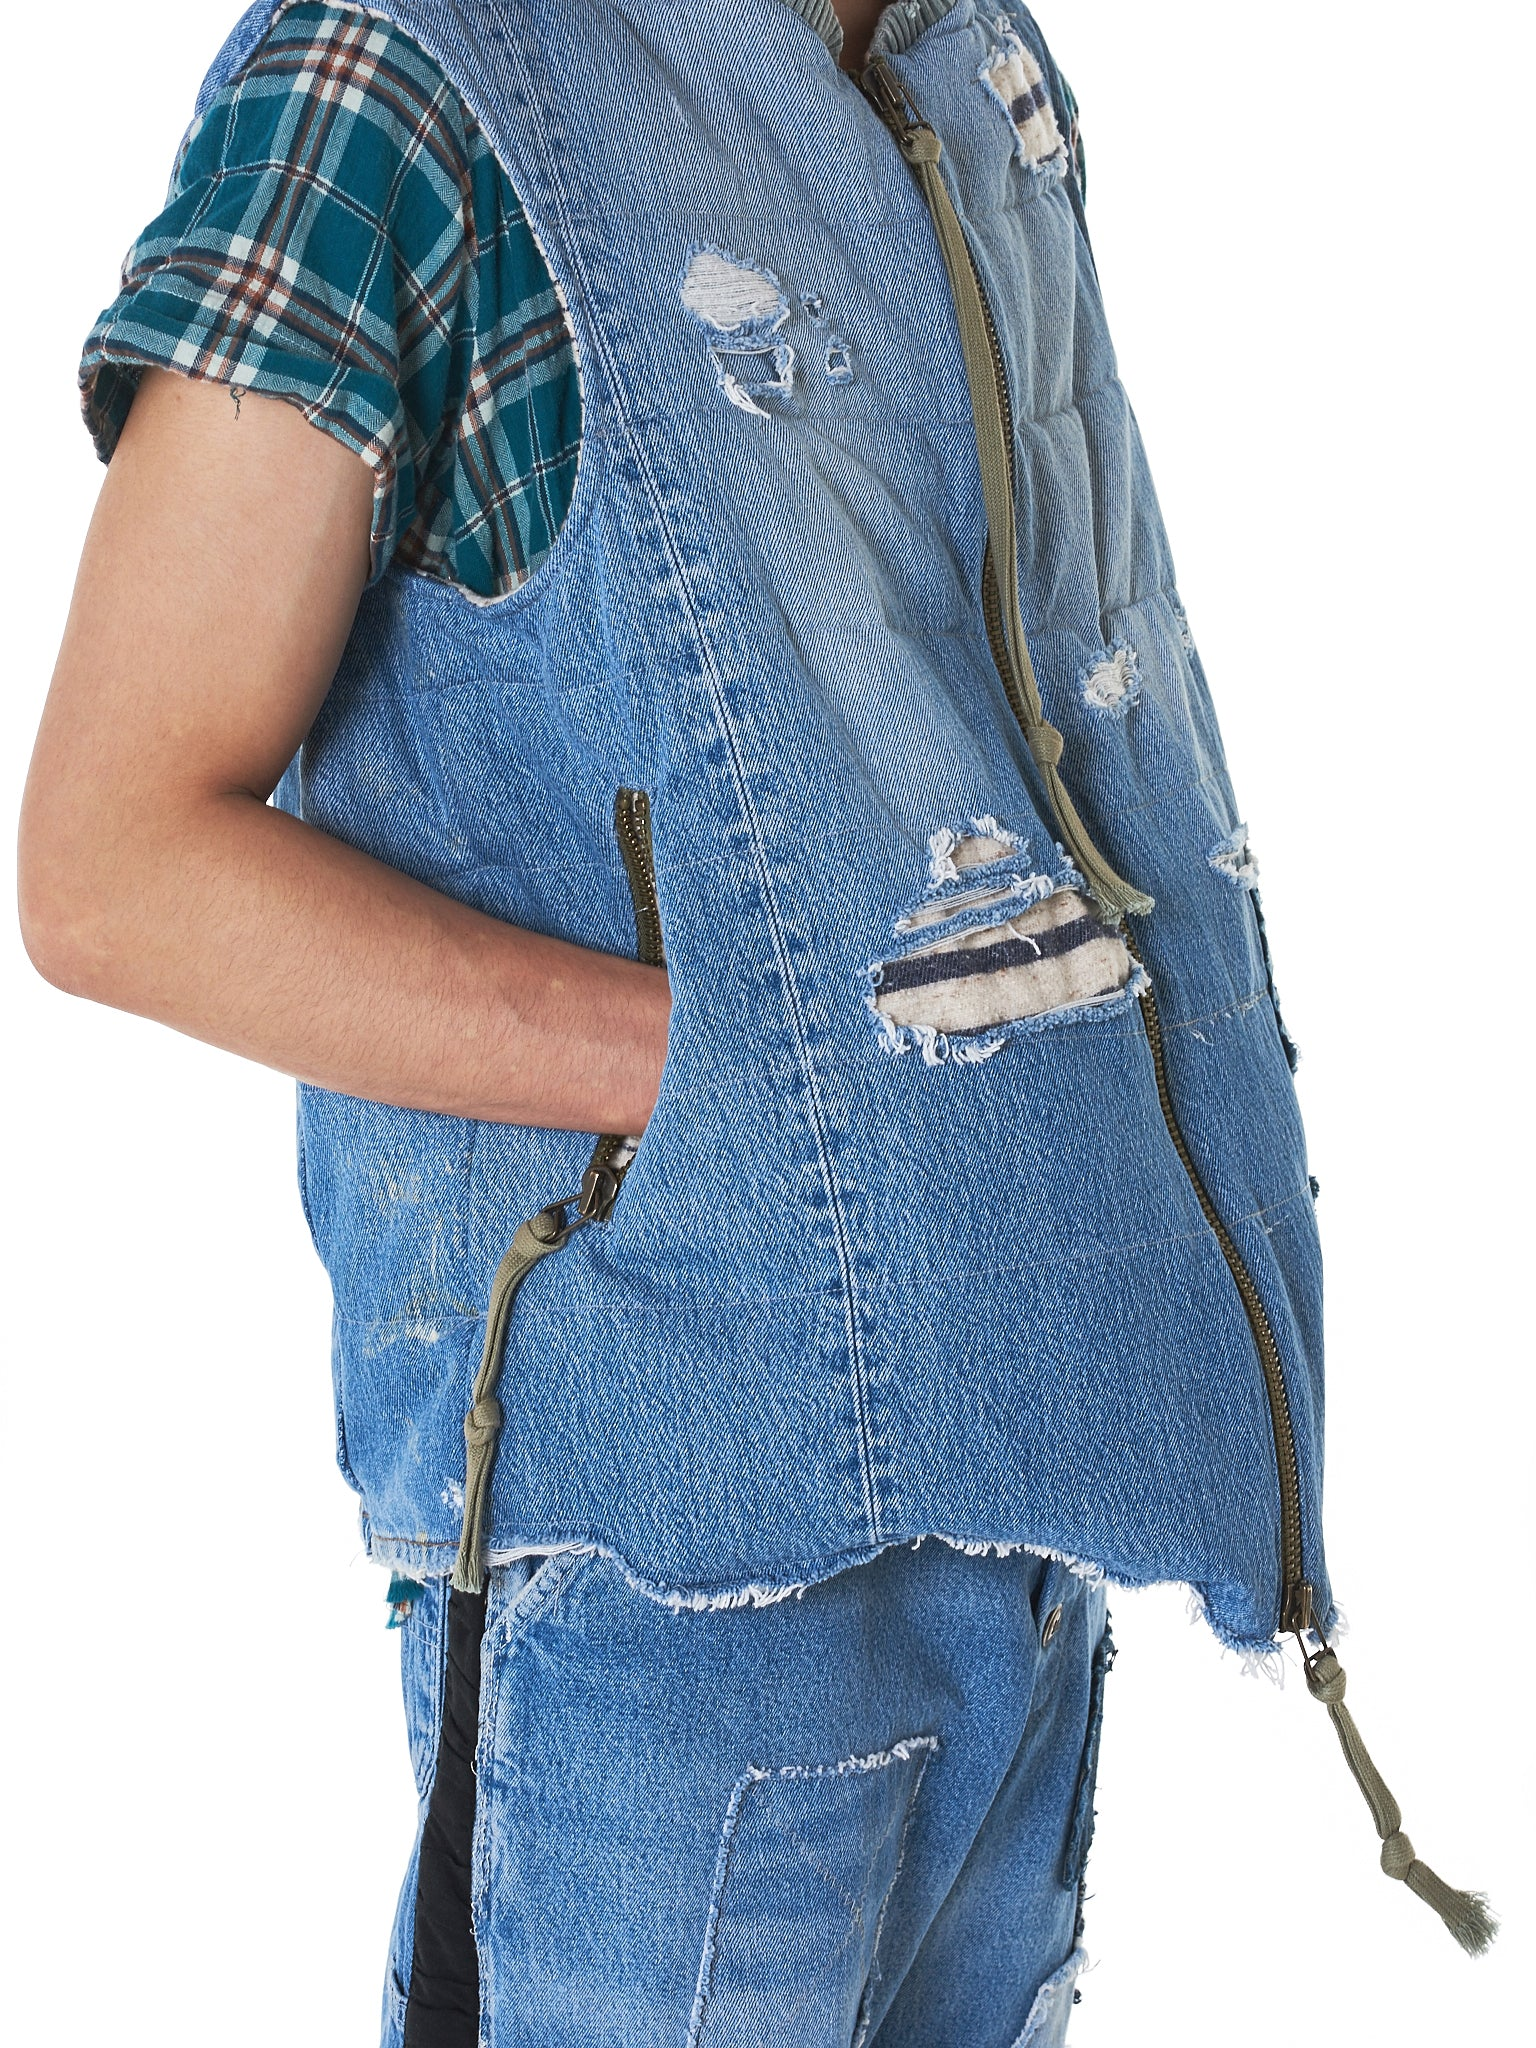 Greg Lauren Denim Vest - Hlorenzo Detail 1